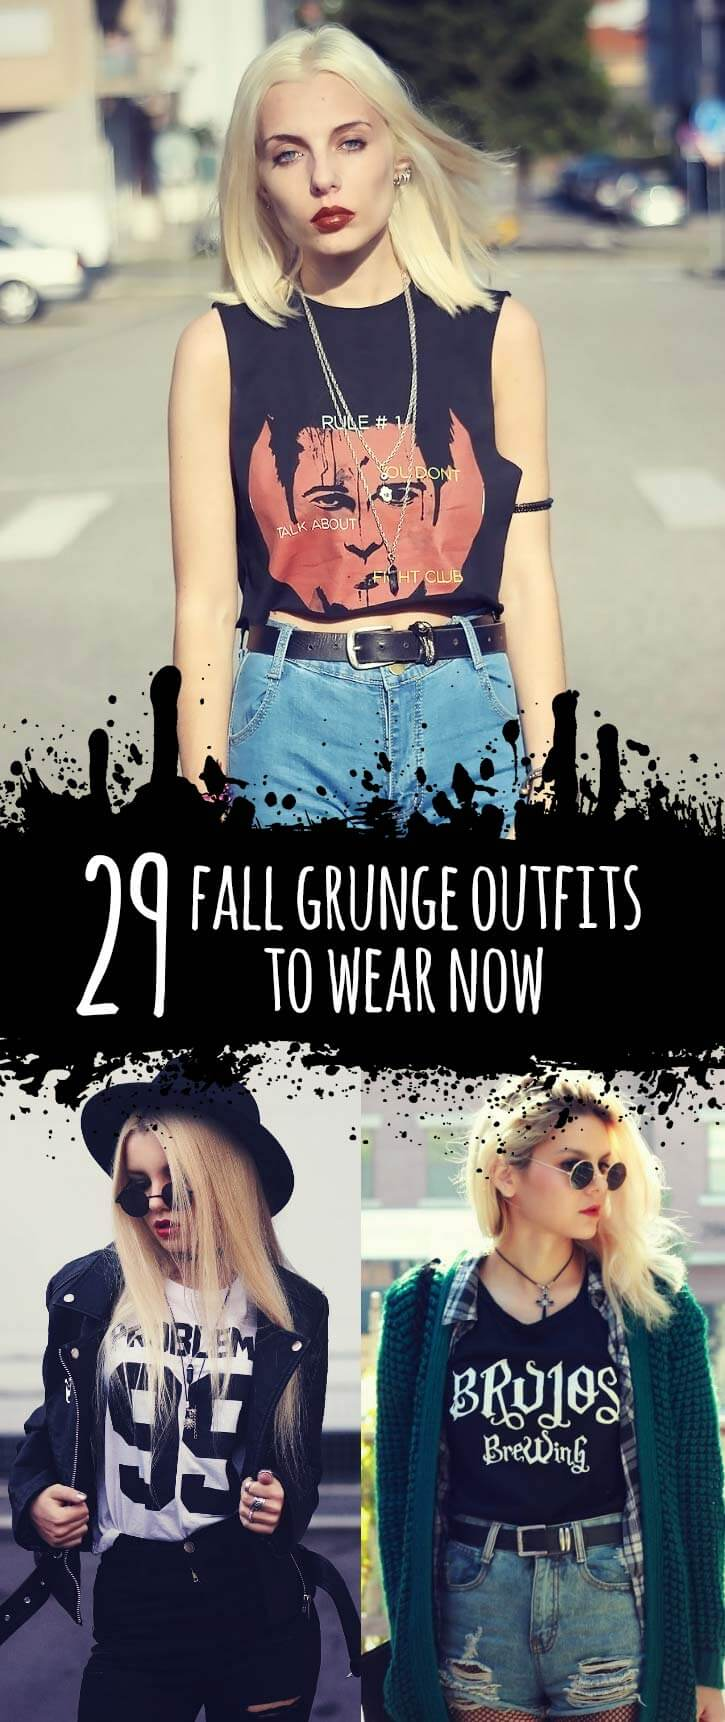 29 Fall Grunge Outfit Ideas to Wear Now - https://ninjacosmico.com/29-grunge-outfit-ideas-fall/